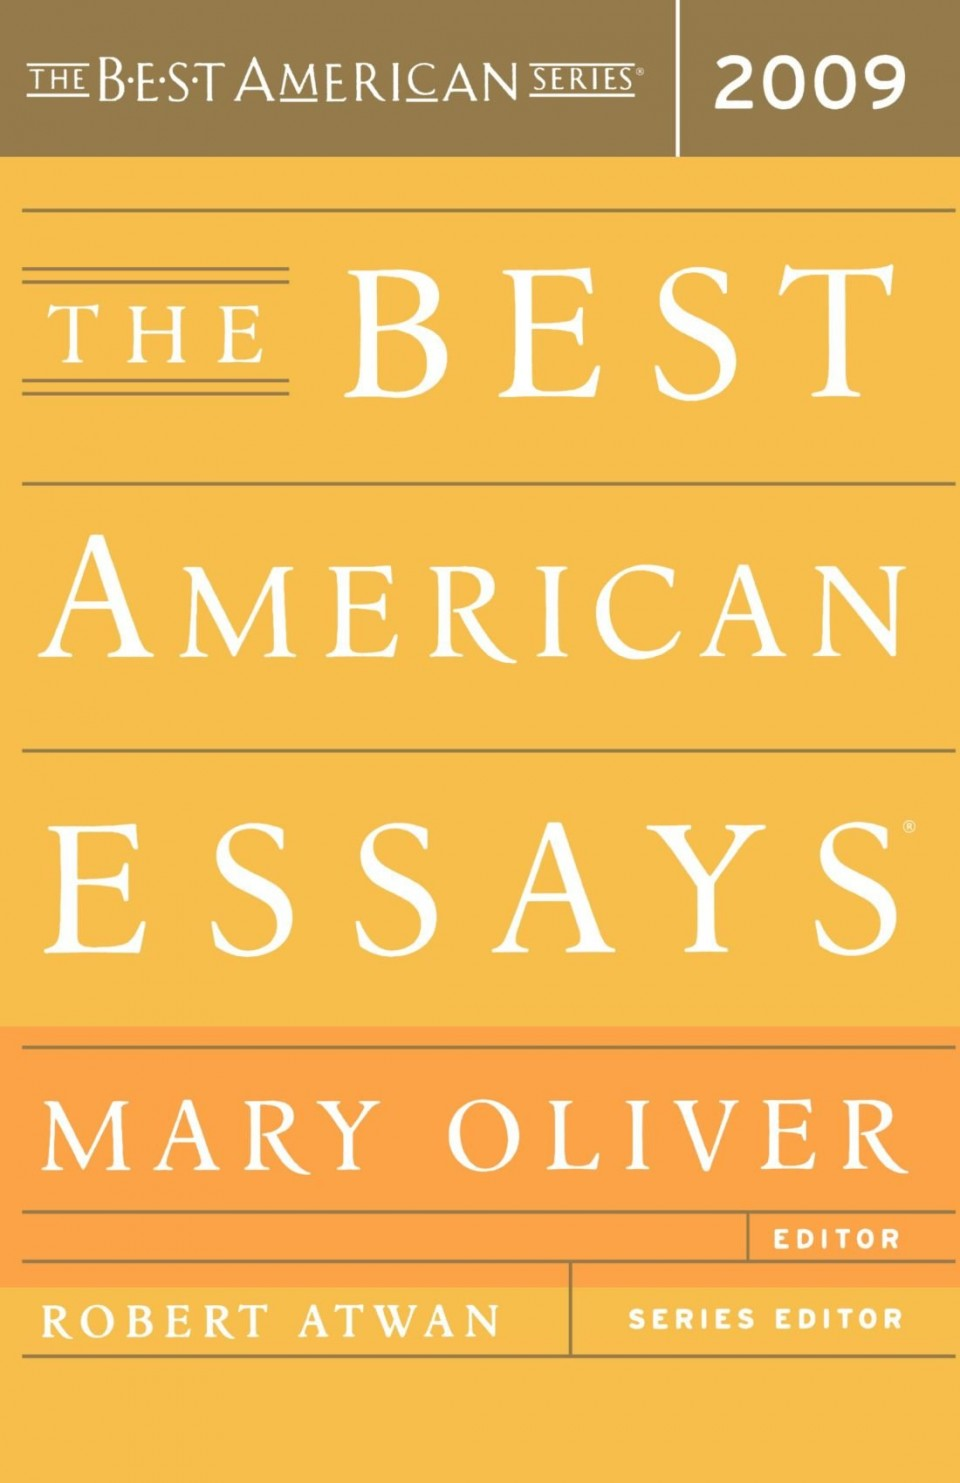 008 617qb5slhfl Essay Example The Best American Wonderful Essays 2018 Pdf 2017 Table Of Contents 2015 Free 960